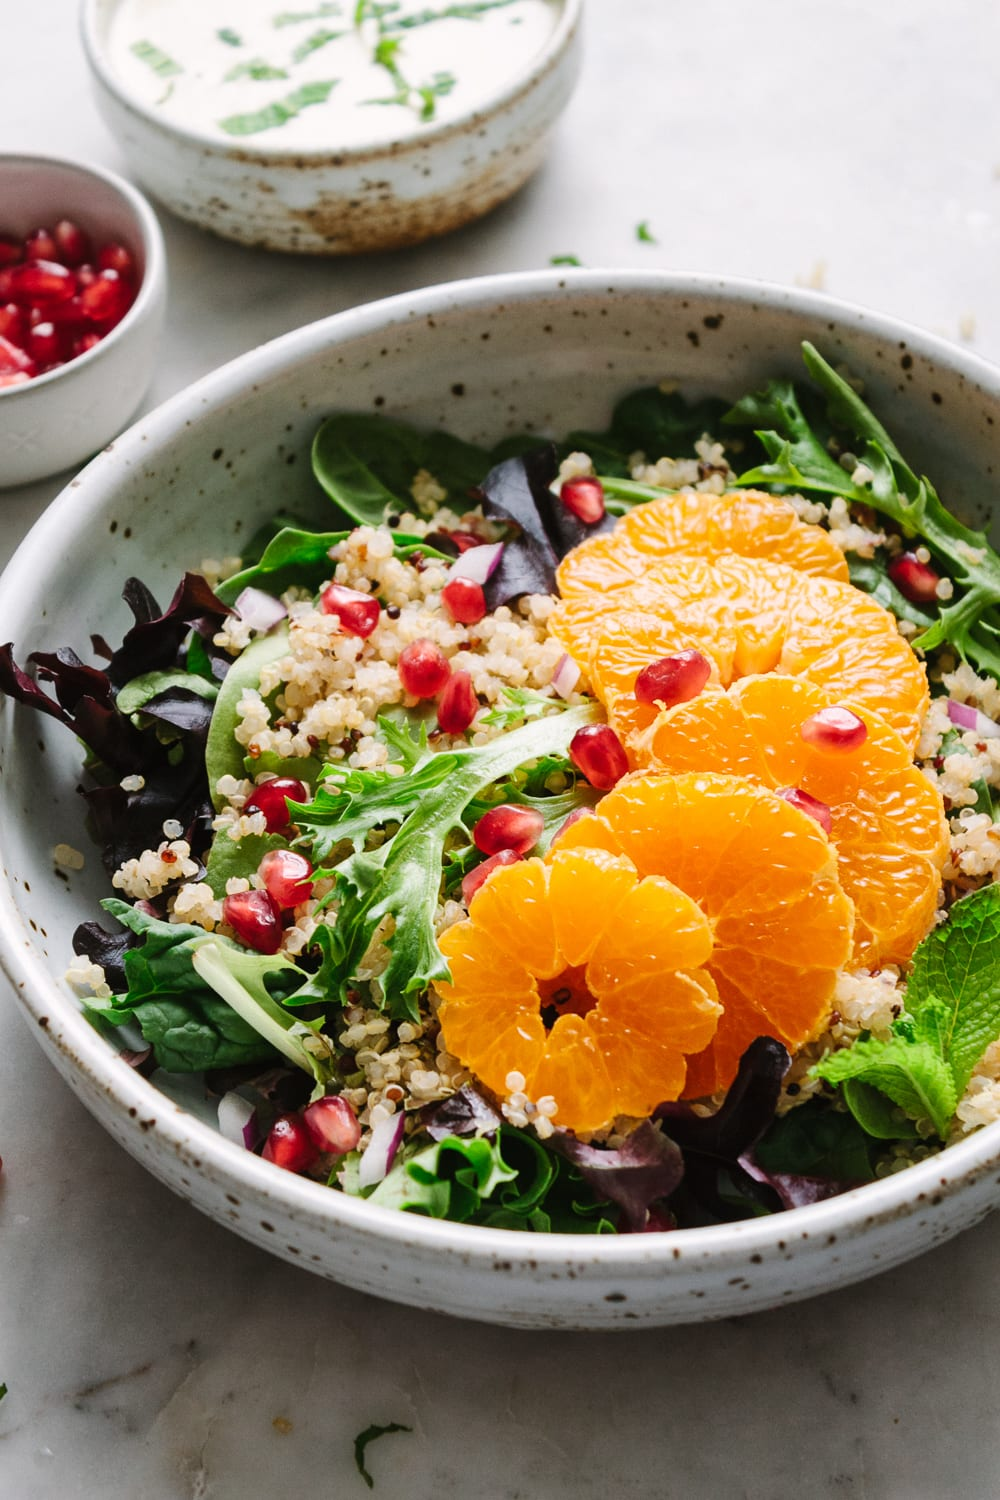 side angle view of a rustic bowl with winter salad of quinoa, orange, pomegranates, and creamy orange-ginger cashew dressing